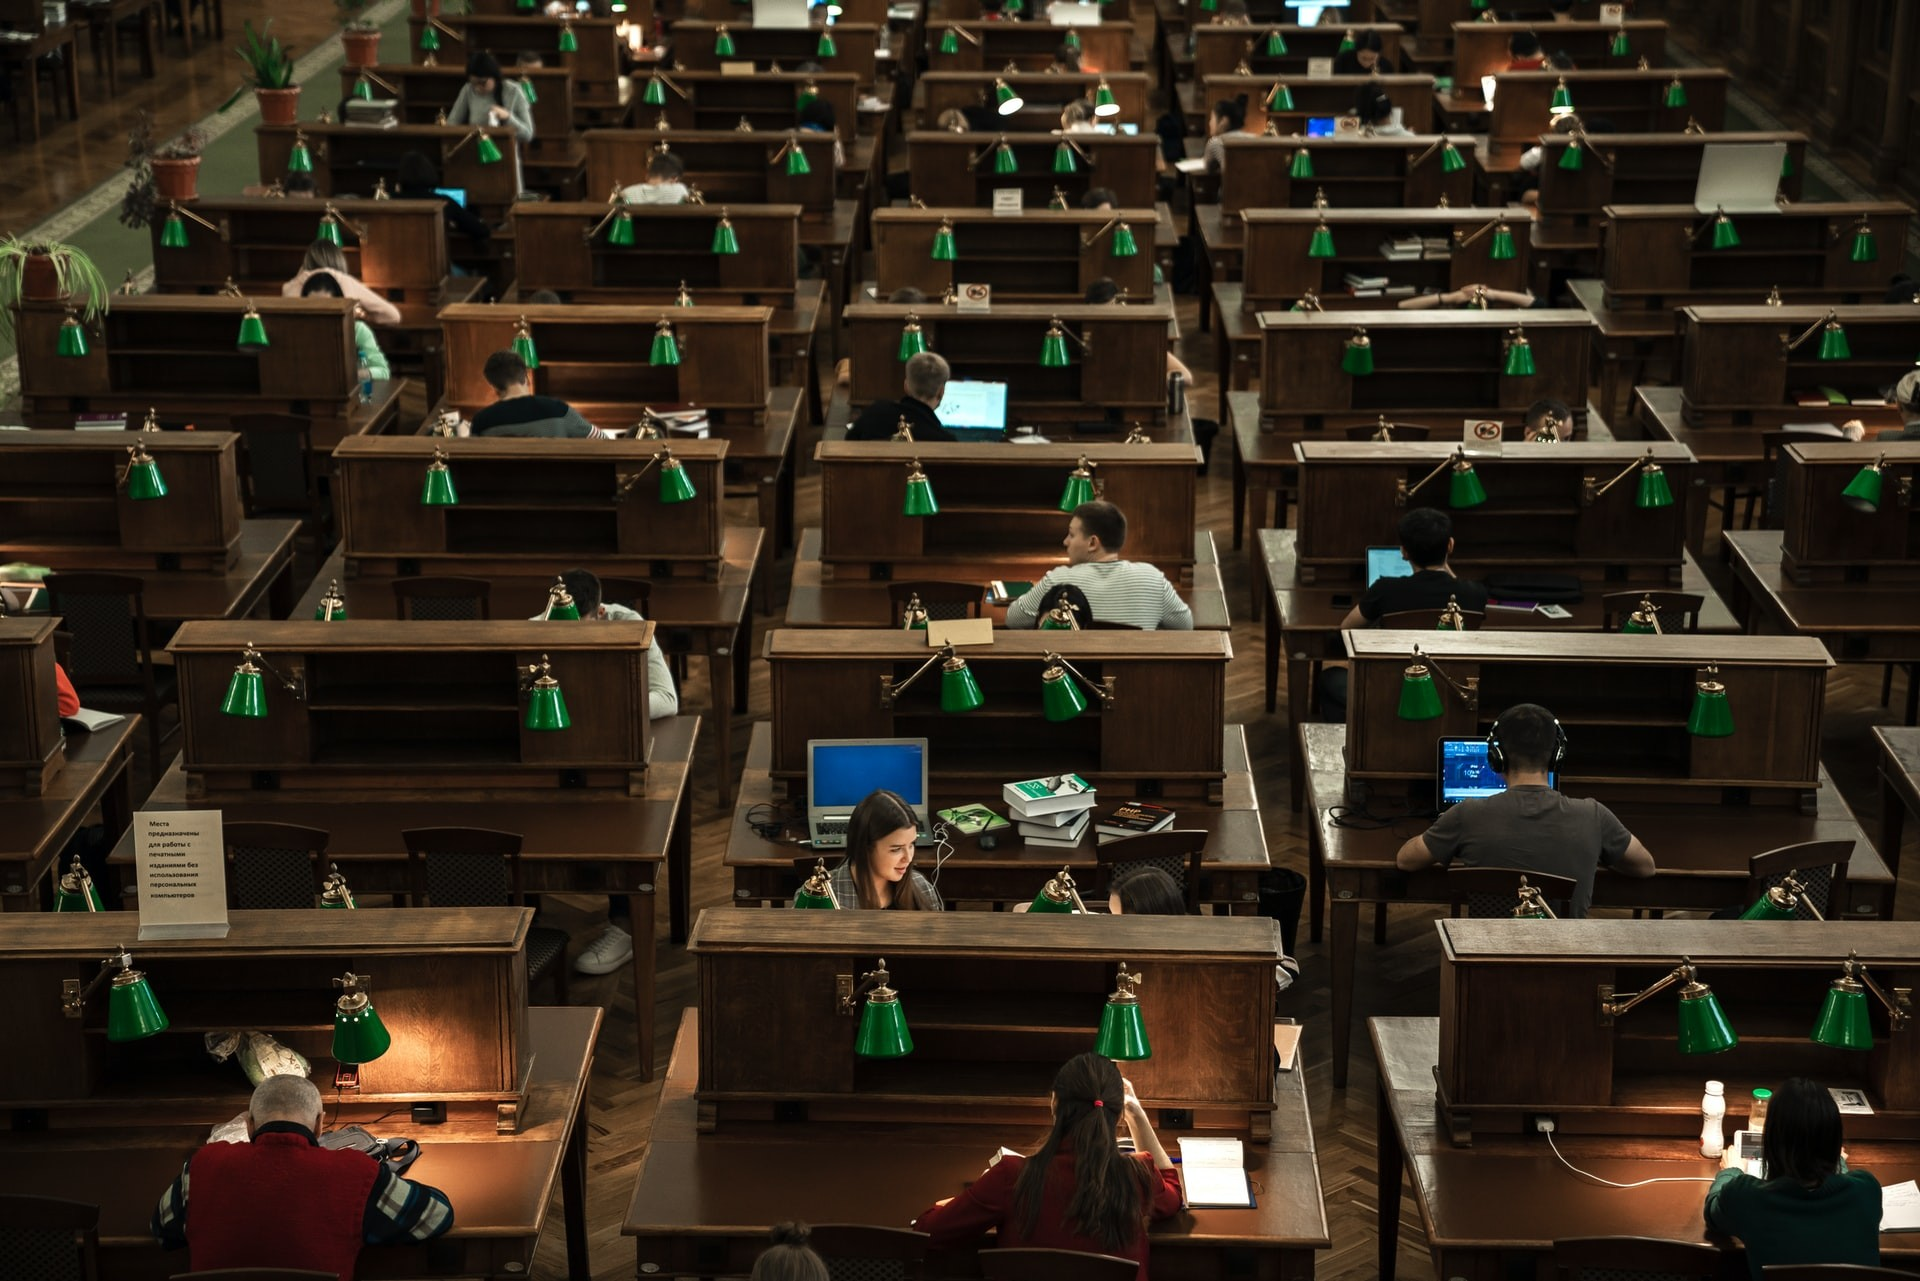 Overhead shot of students studying in a large college library.